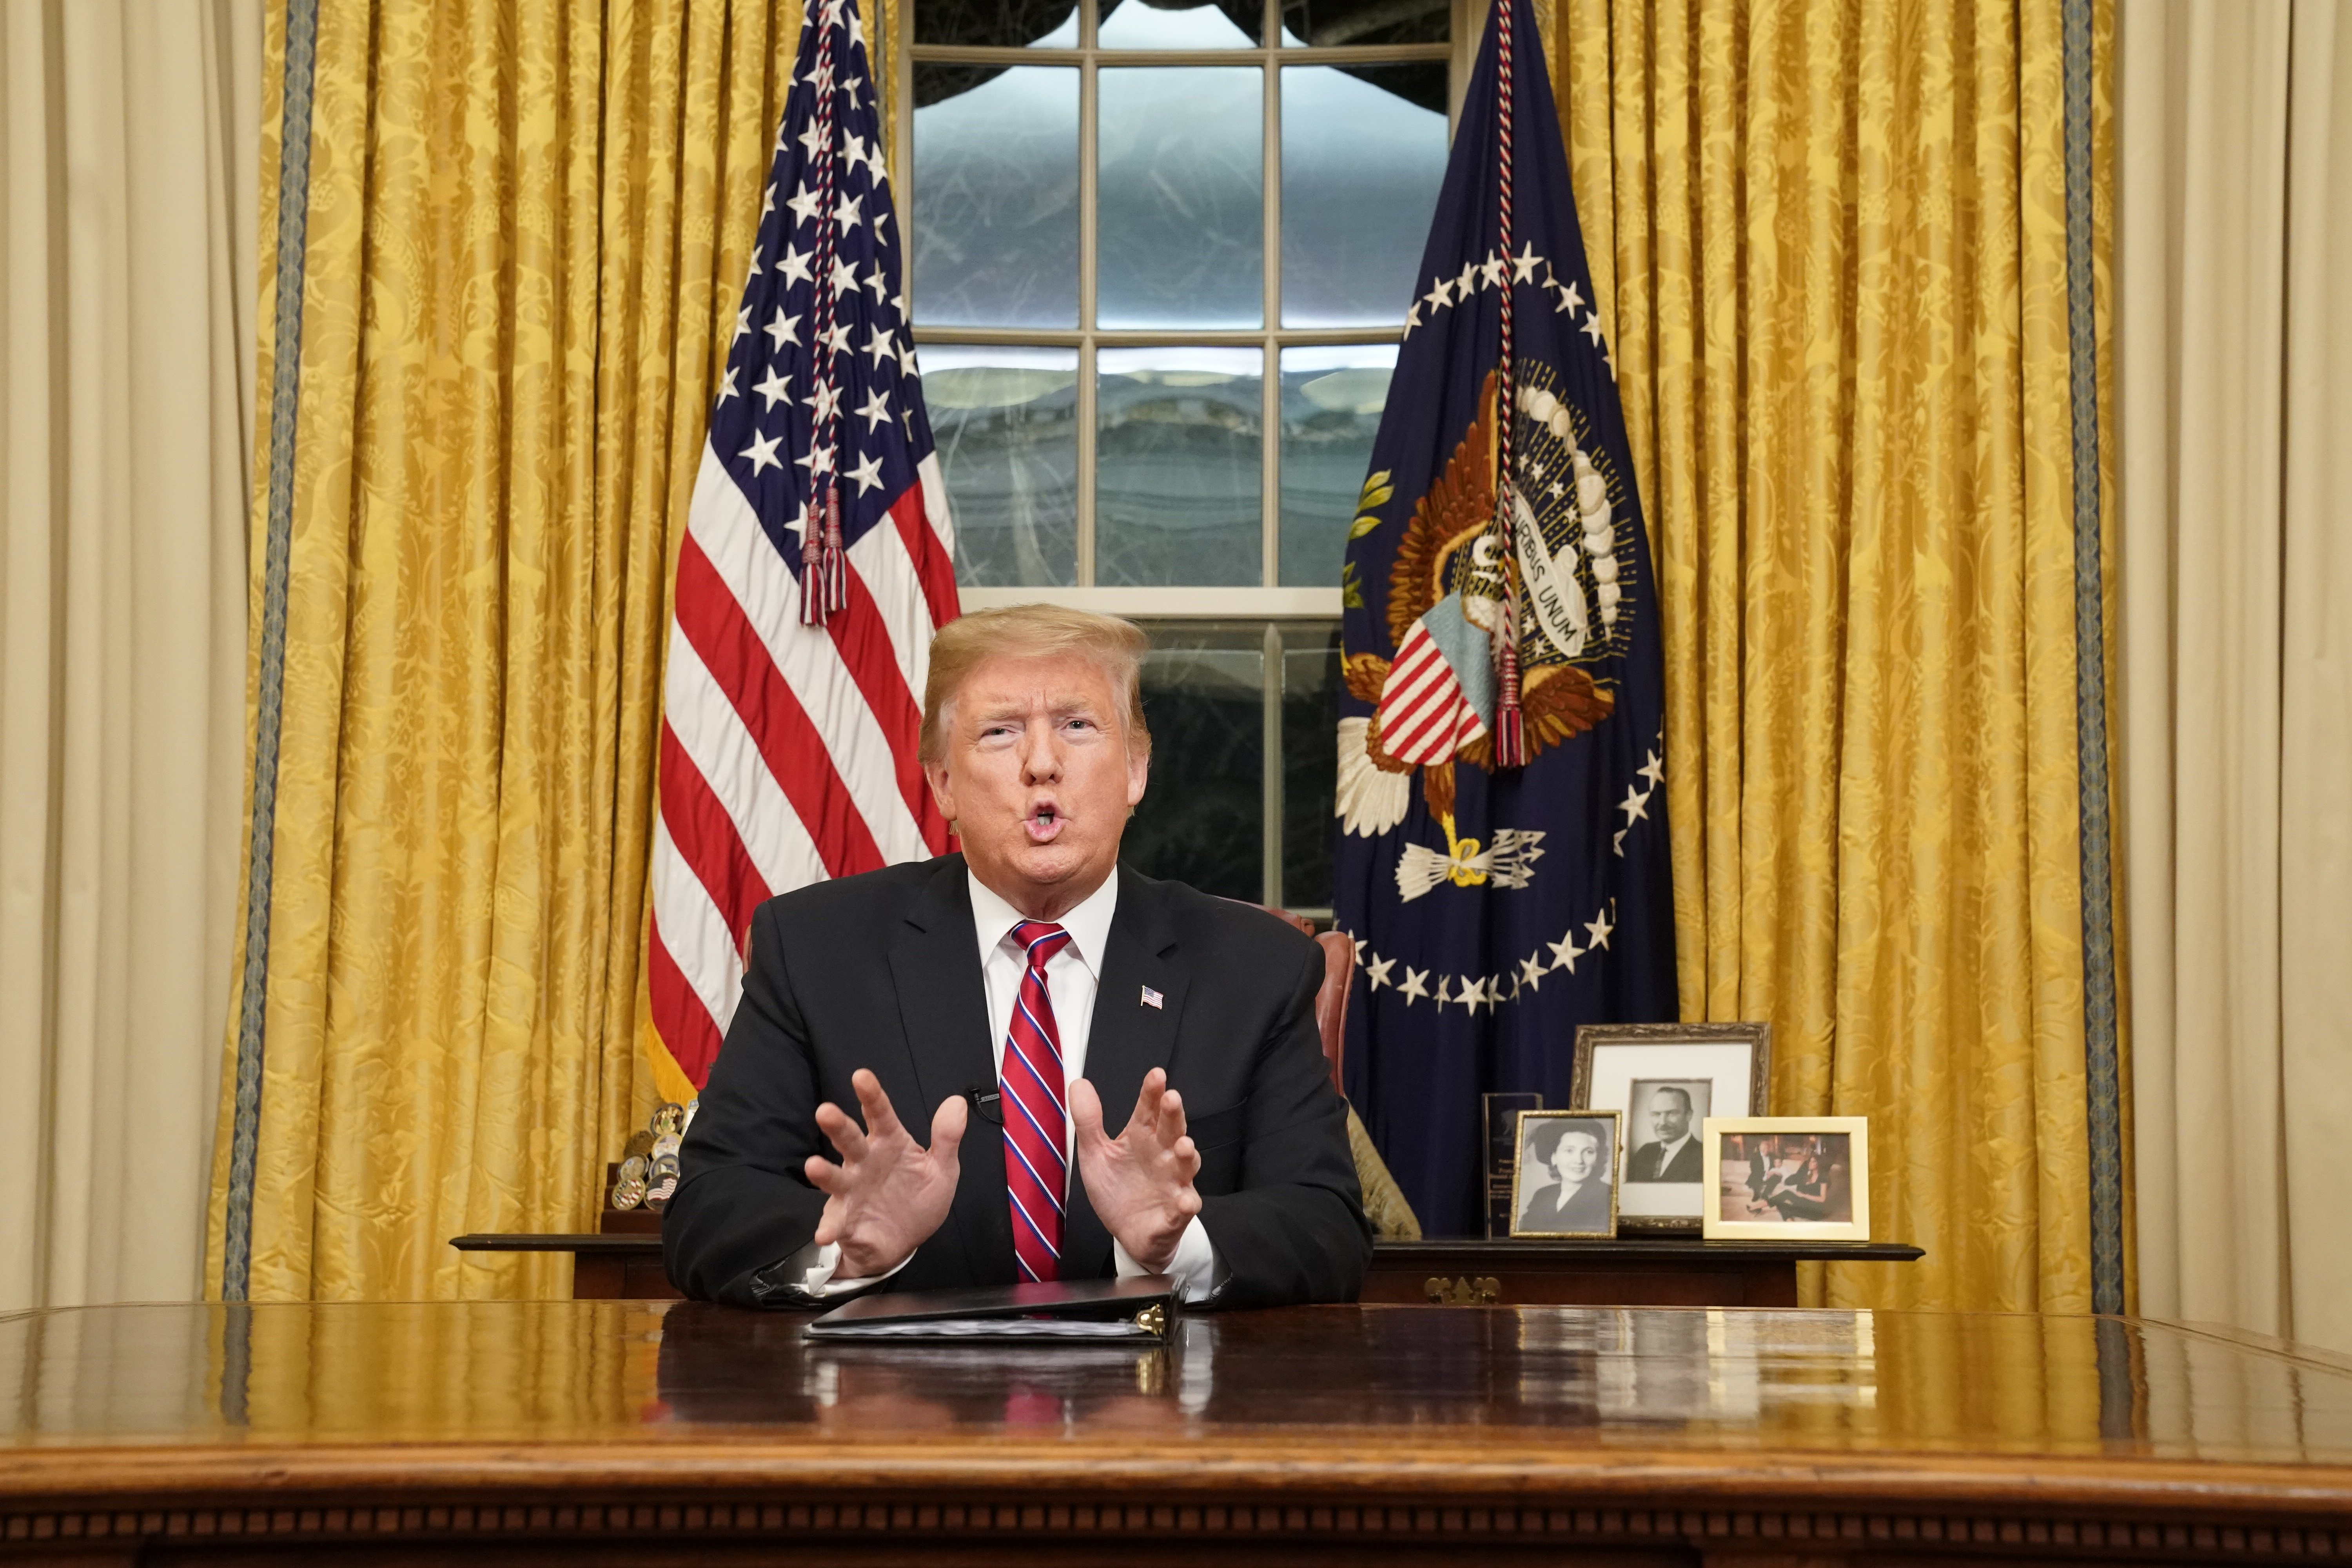 Donald Trump speaking to the nation in his first-prime address from the Oval Office of the White House | Photo: Getty Images